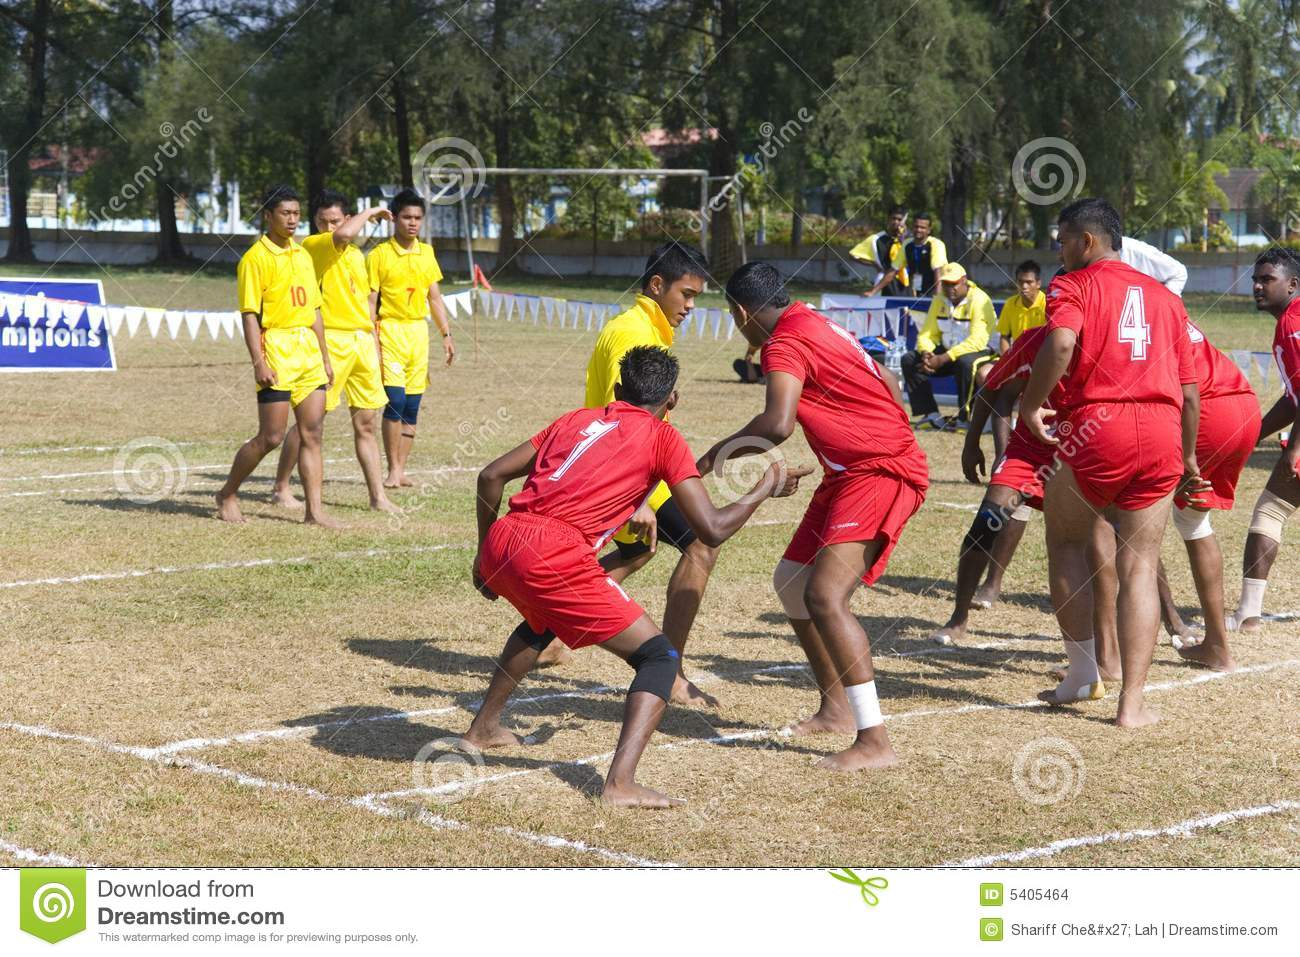 kabaddi game 3 days ago  england boss gareth southgate got his squad playing kabaddi in their training  session ahead of the fifa world cup.